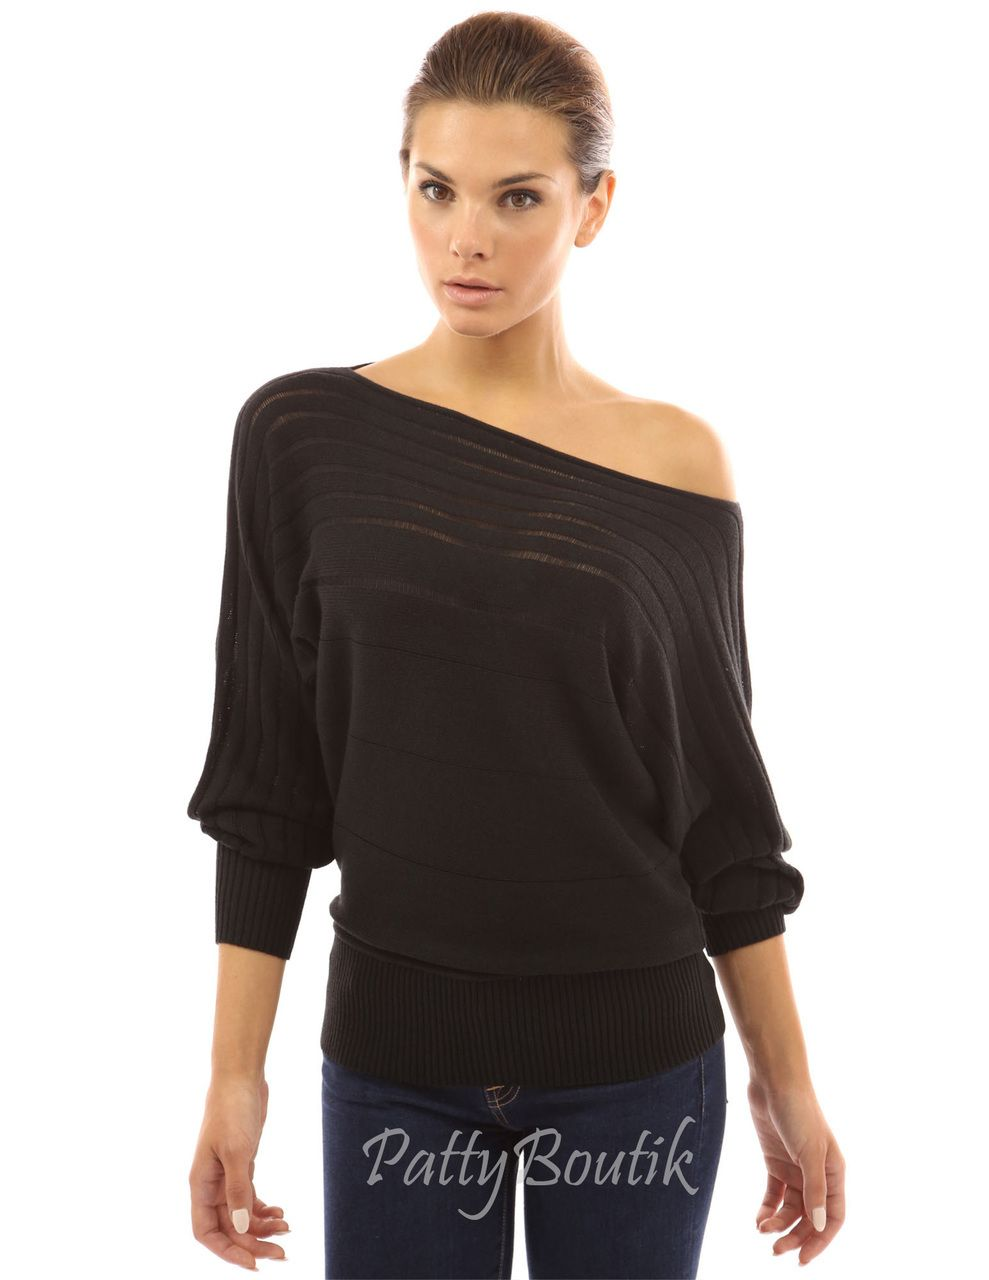 653e4e8aa3a on / off one shoulder Semi-sheer Sweater | Tops and Sweaters ...